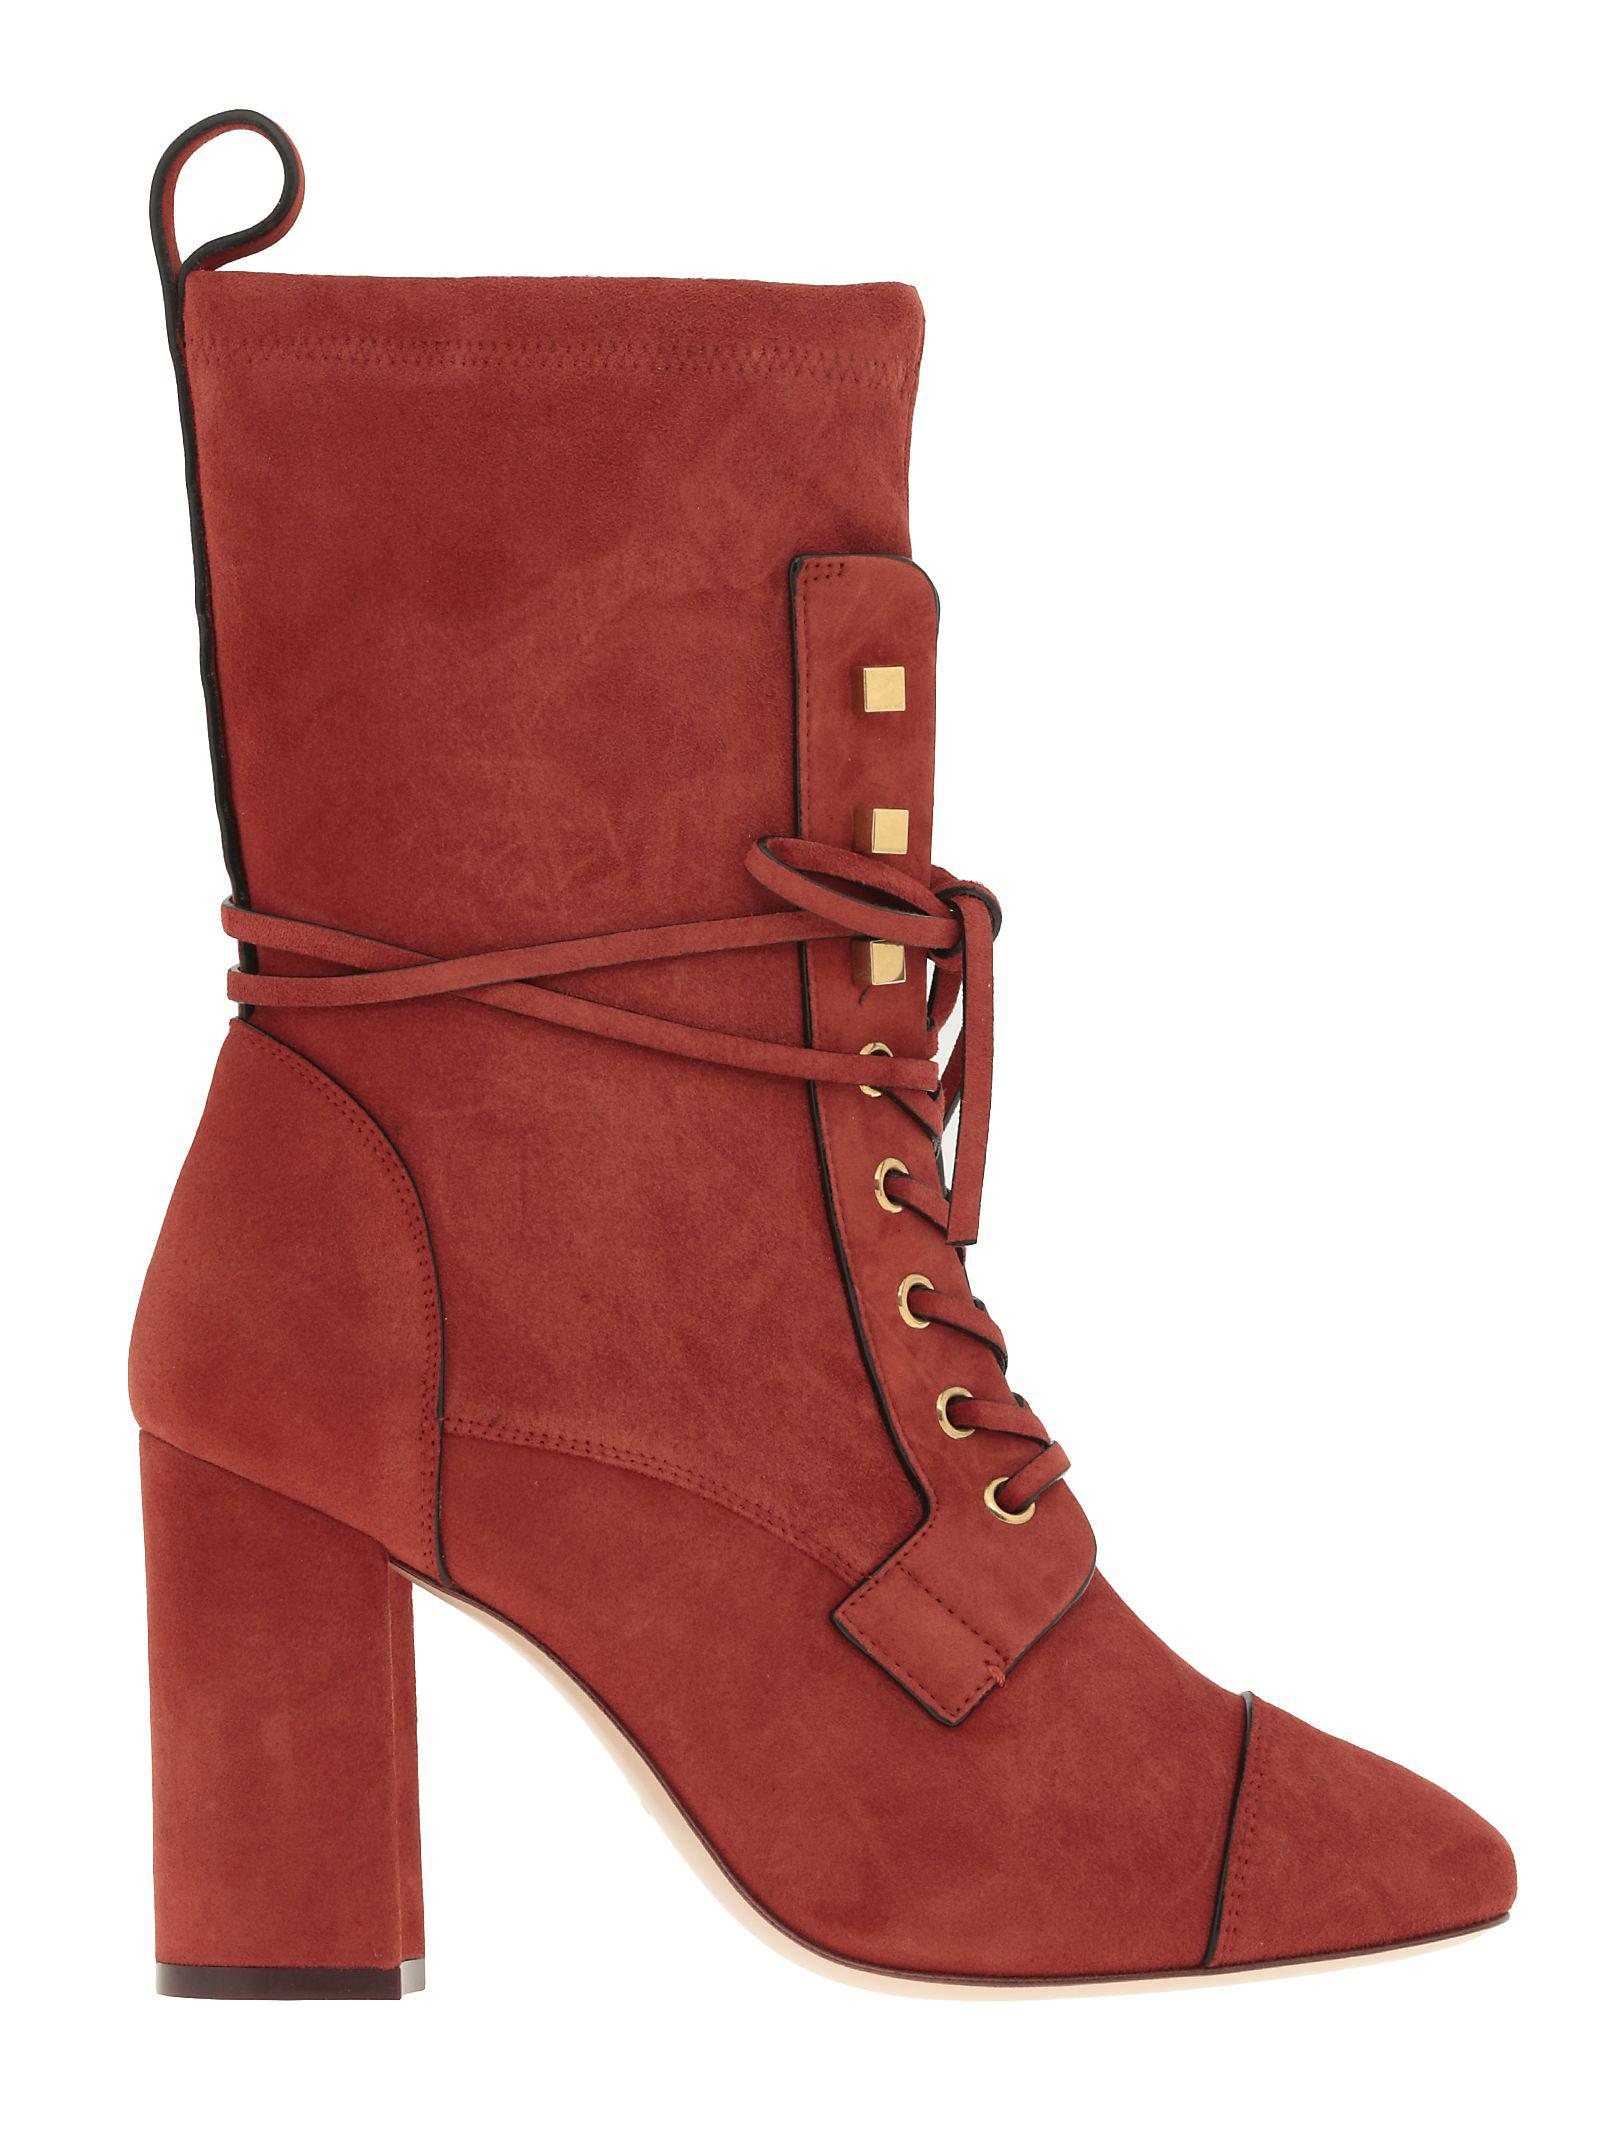 Stuart Weitzman Veruka Boot In Orange